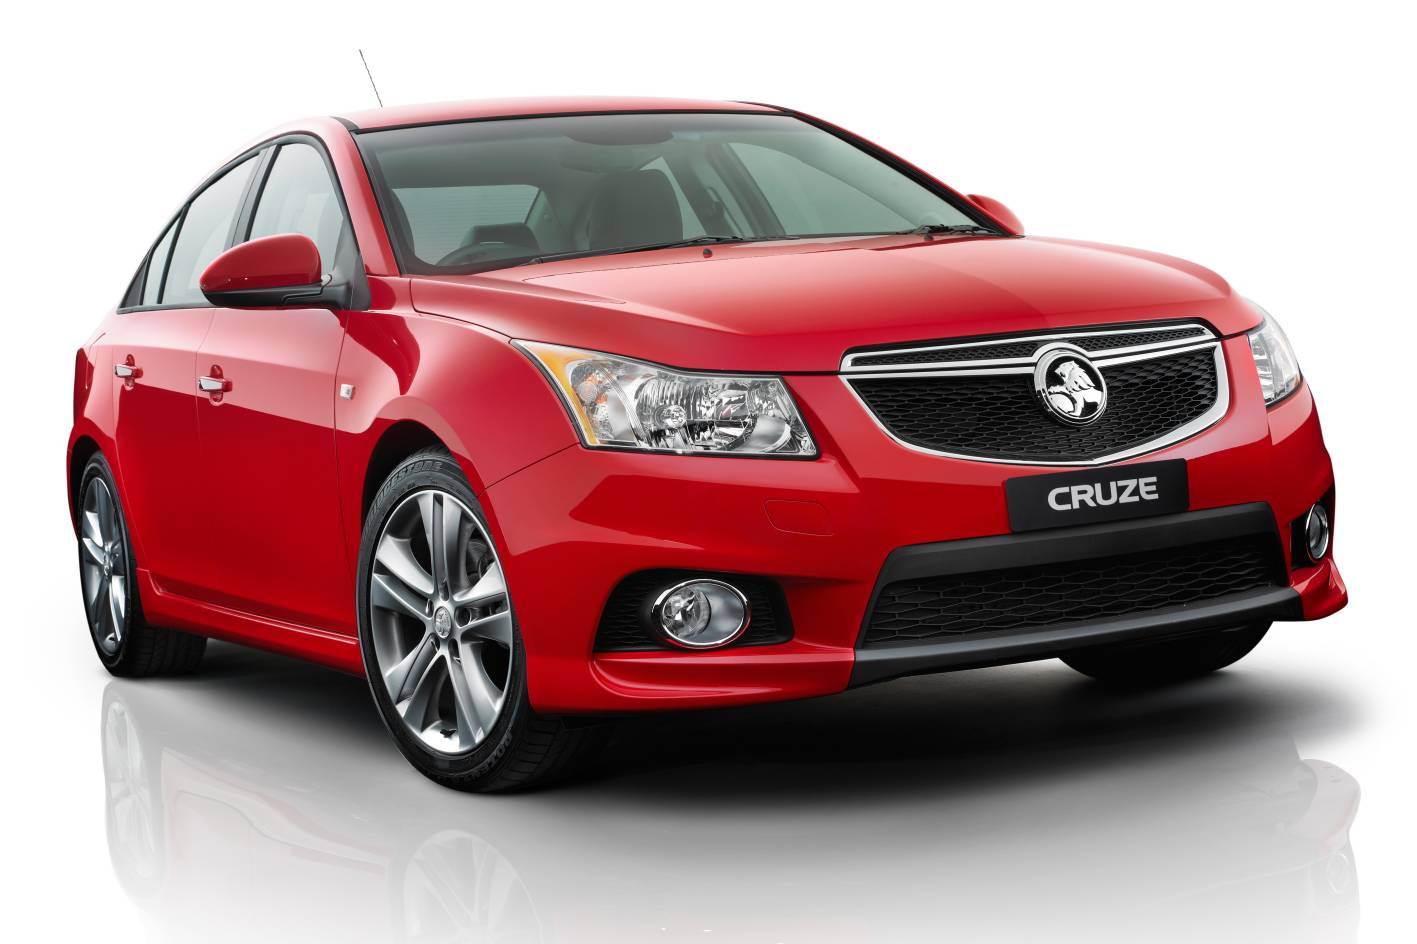 holden cars news my14 cruze adds 1 6l turbo. Black Bedroom Furniture Sets. Home Design Ideas